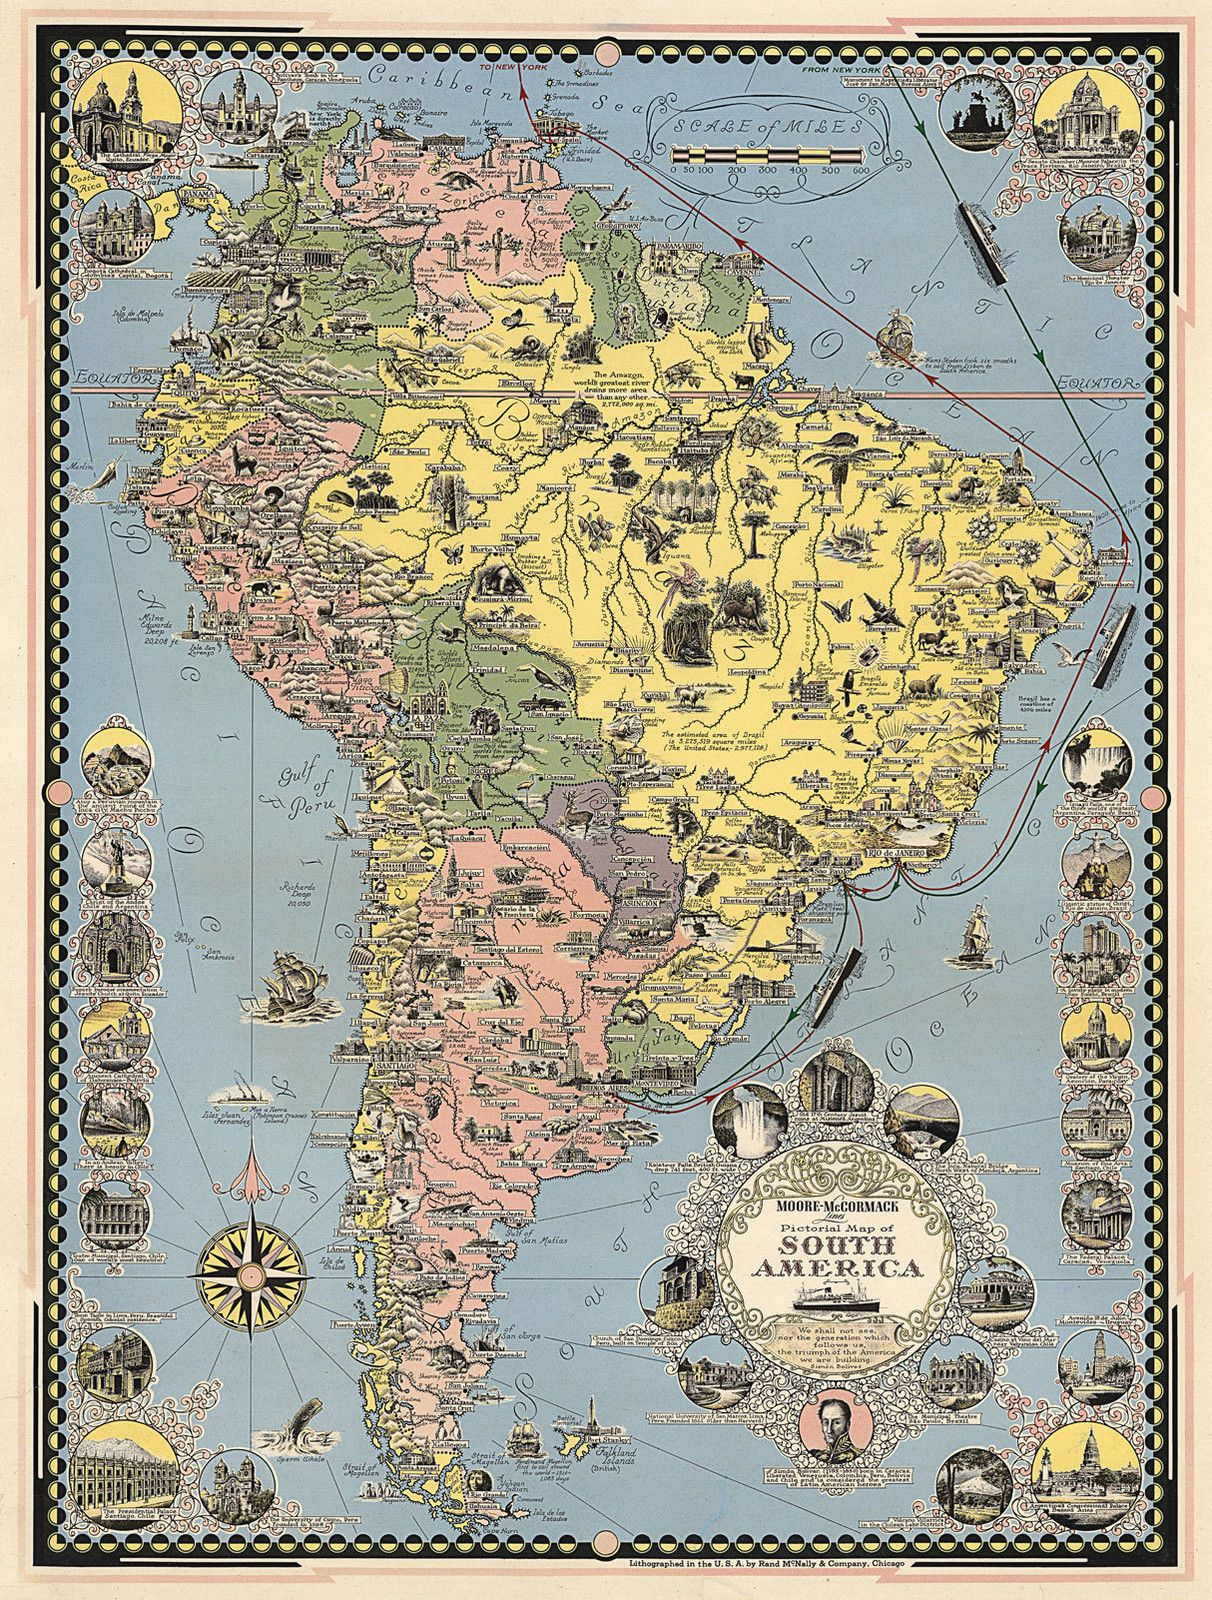 Midcentury Pictorial Map Cruise Routes New York to South America ...